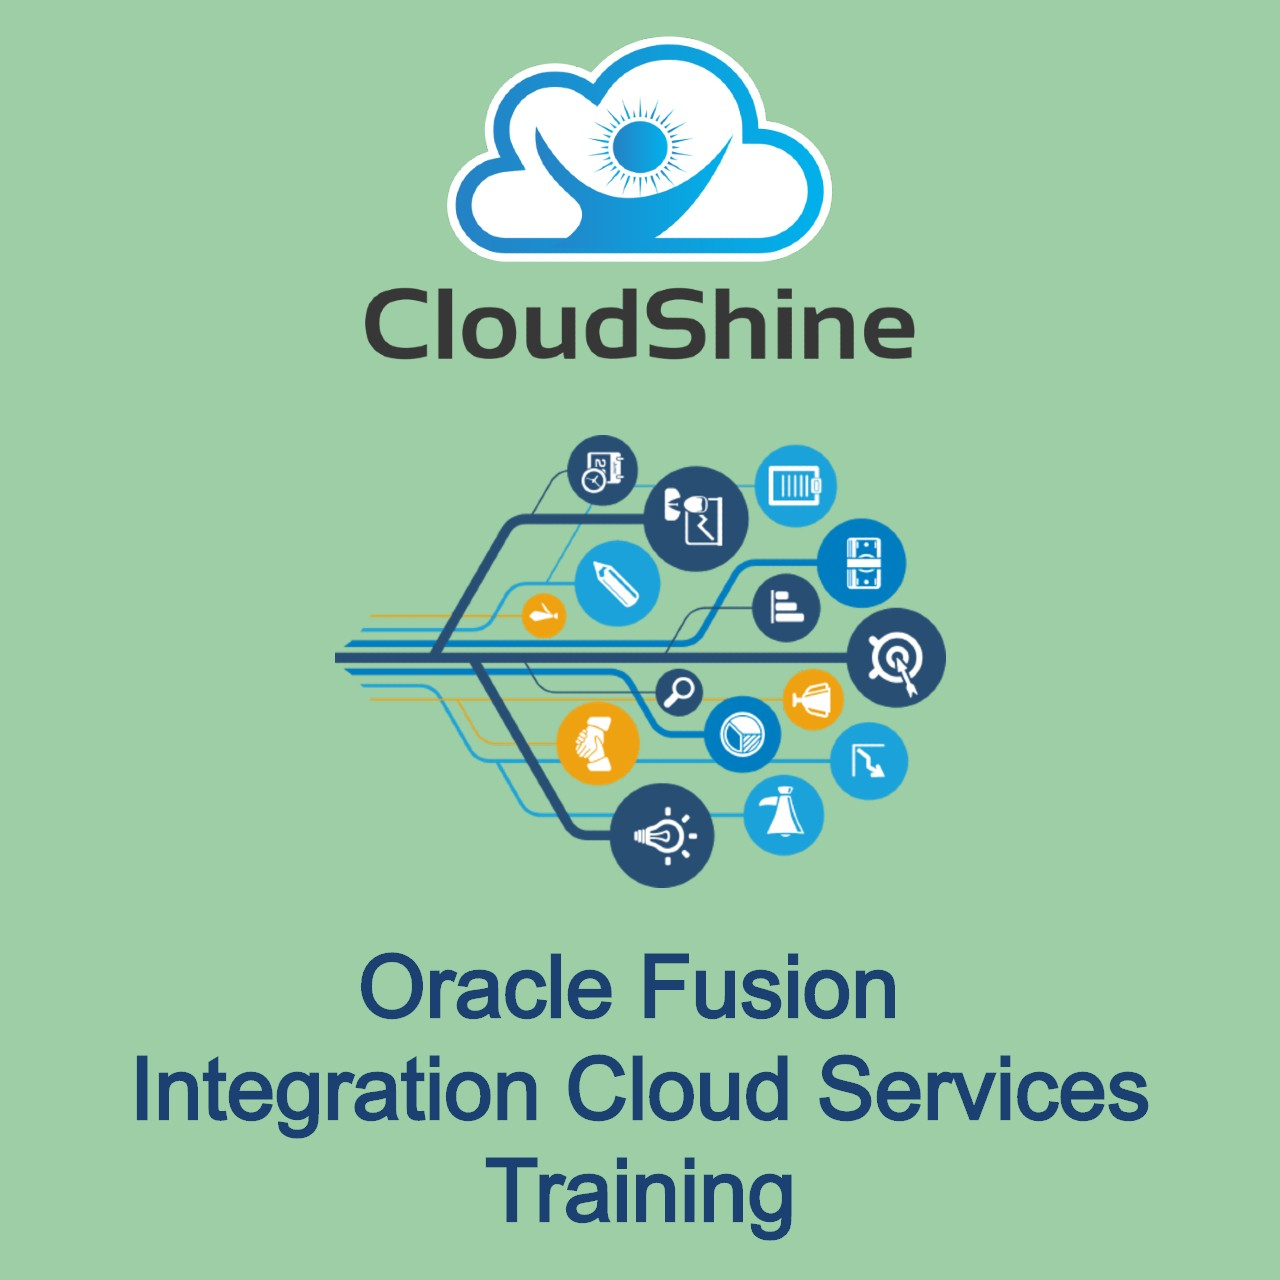 CloudShine Integration Cloud Service Training